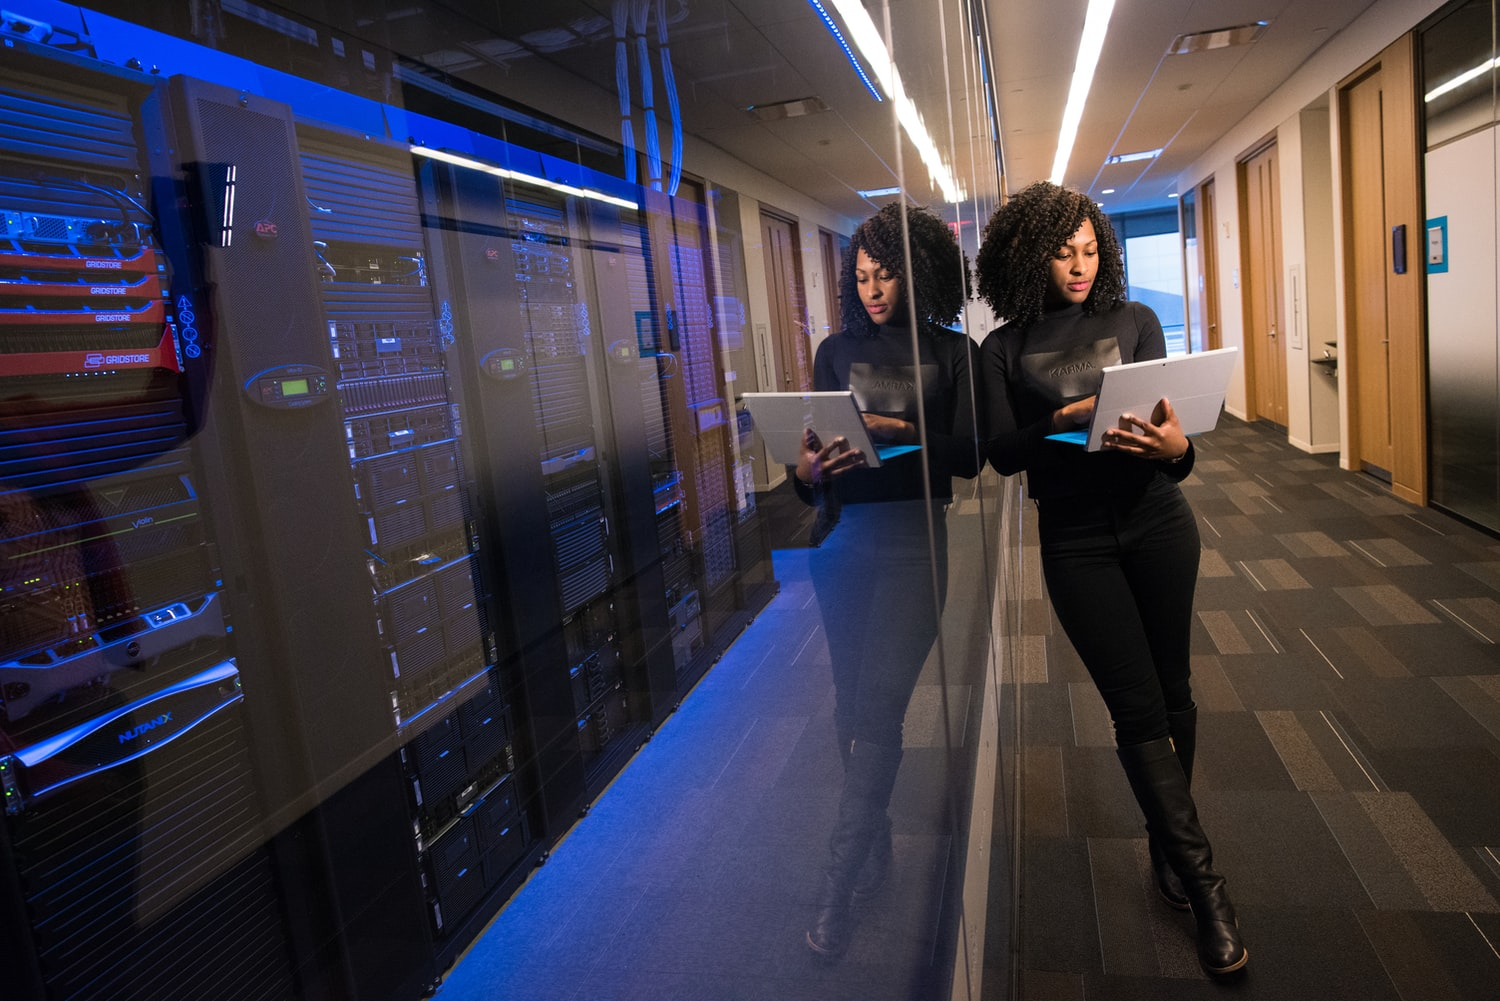 Woman standing with a laptop near an IT room